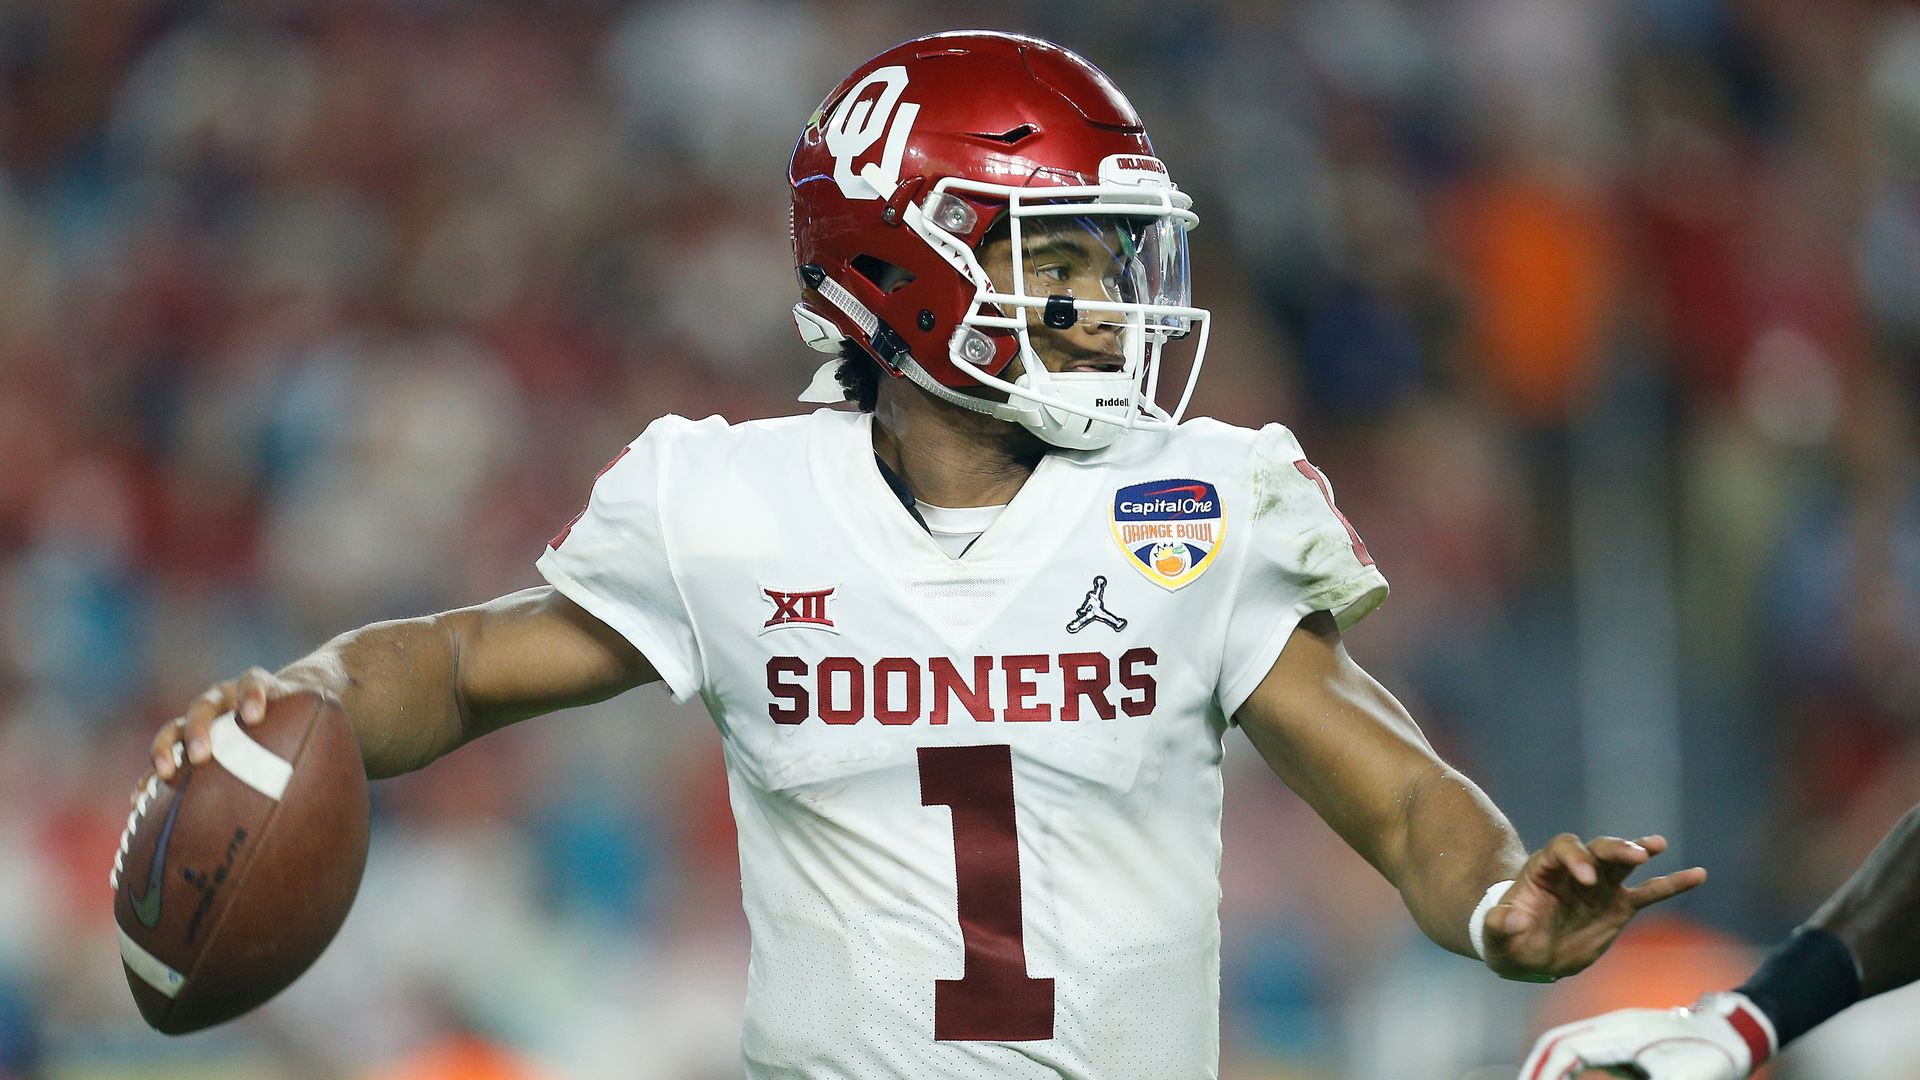 Oklahoma QB Kyler Murray making a pass